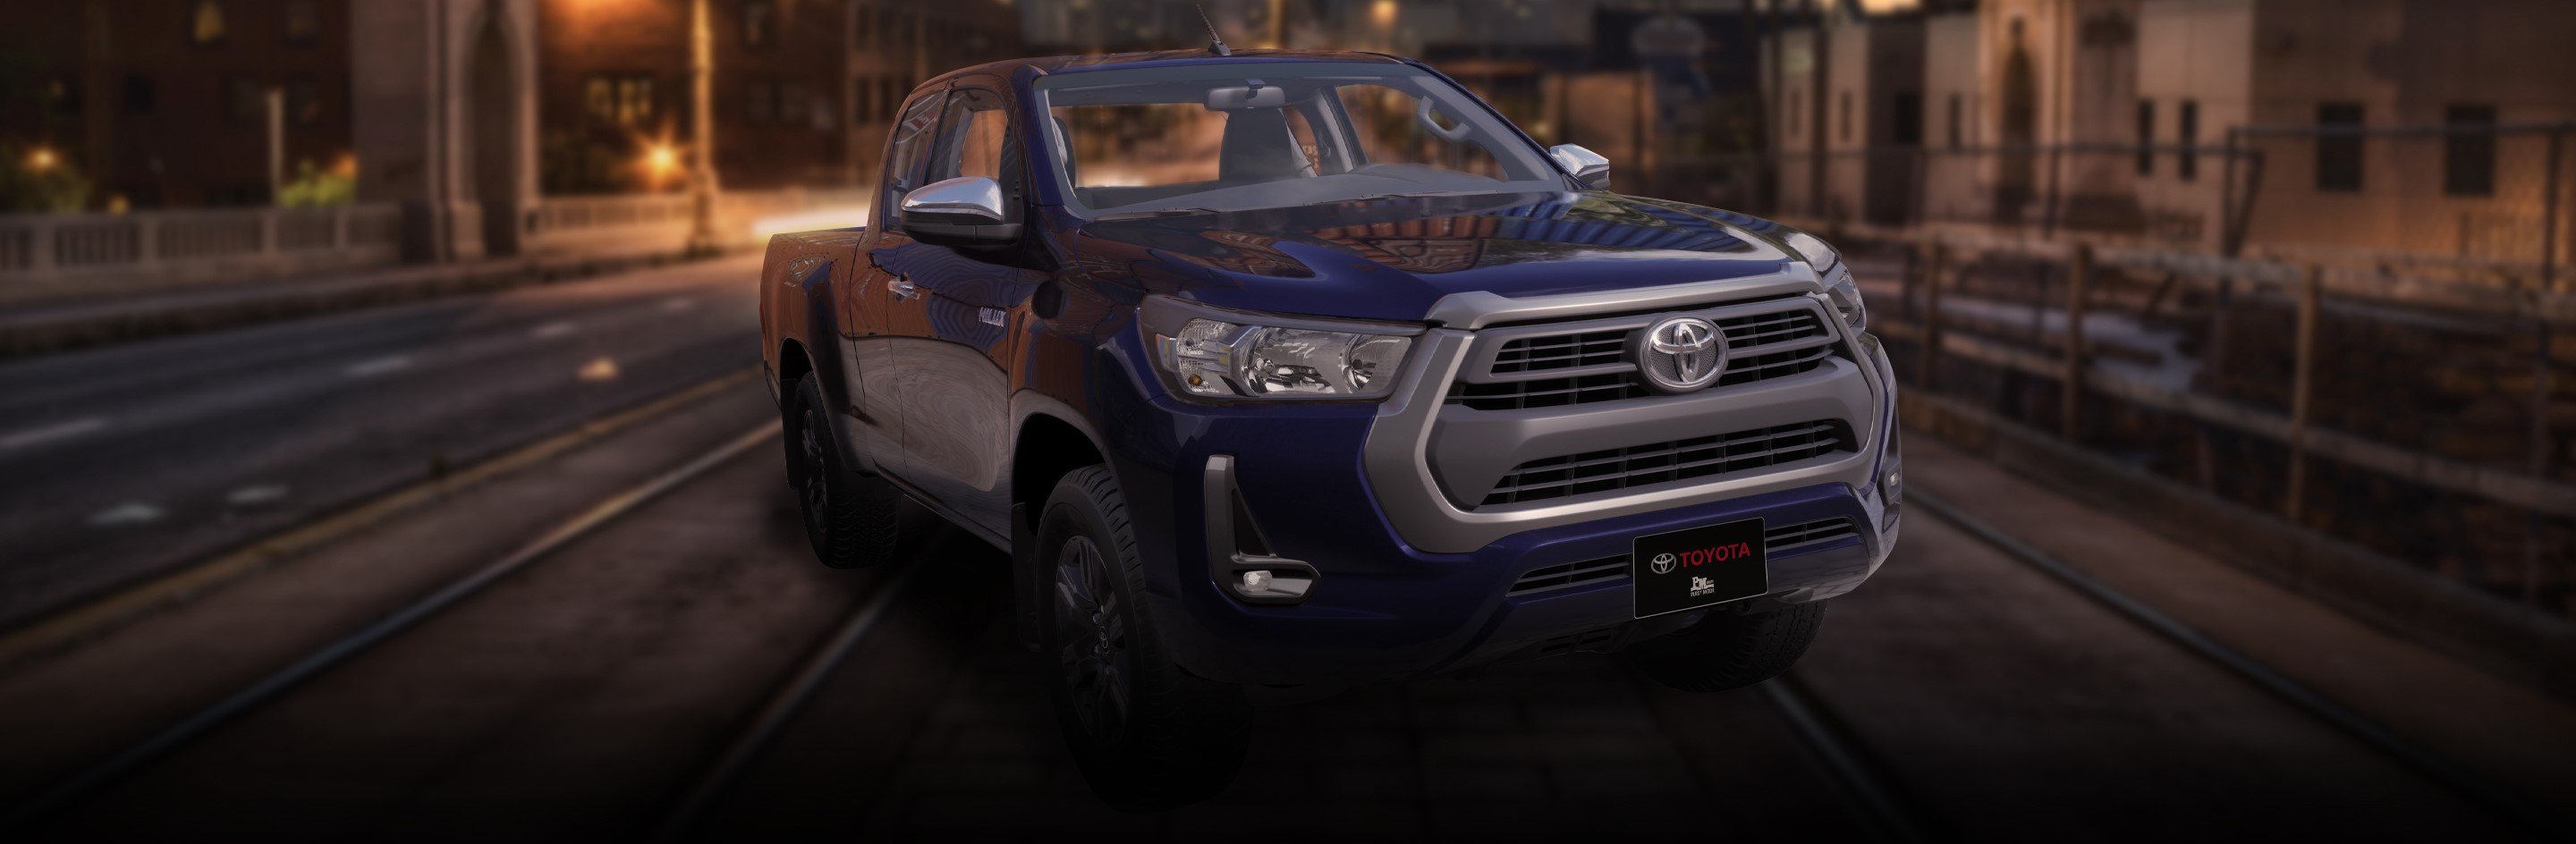 Banner Toyota Hilux Extra Cabina 2021